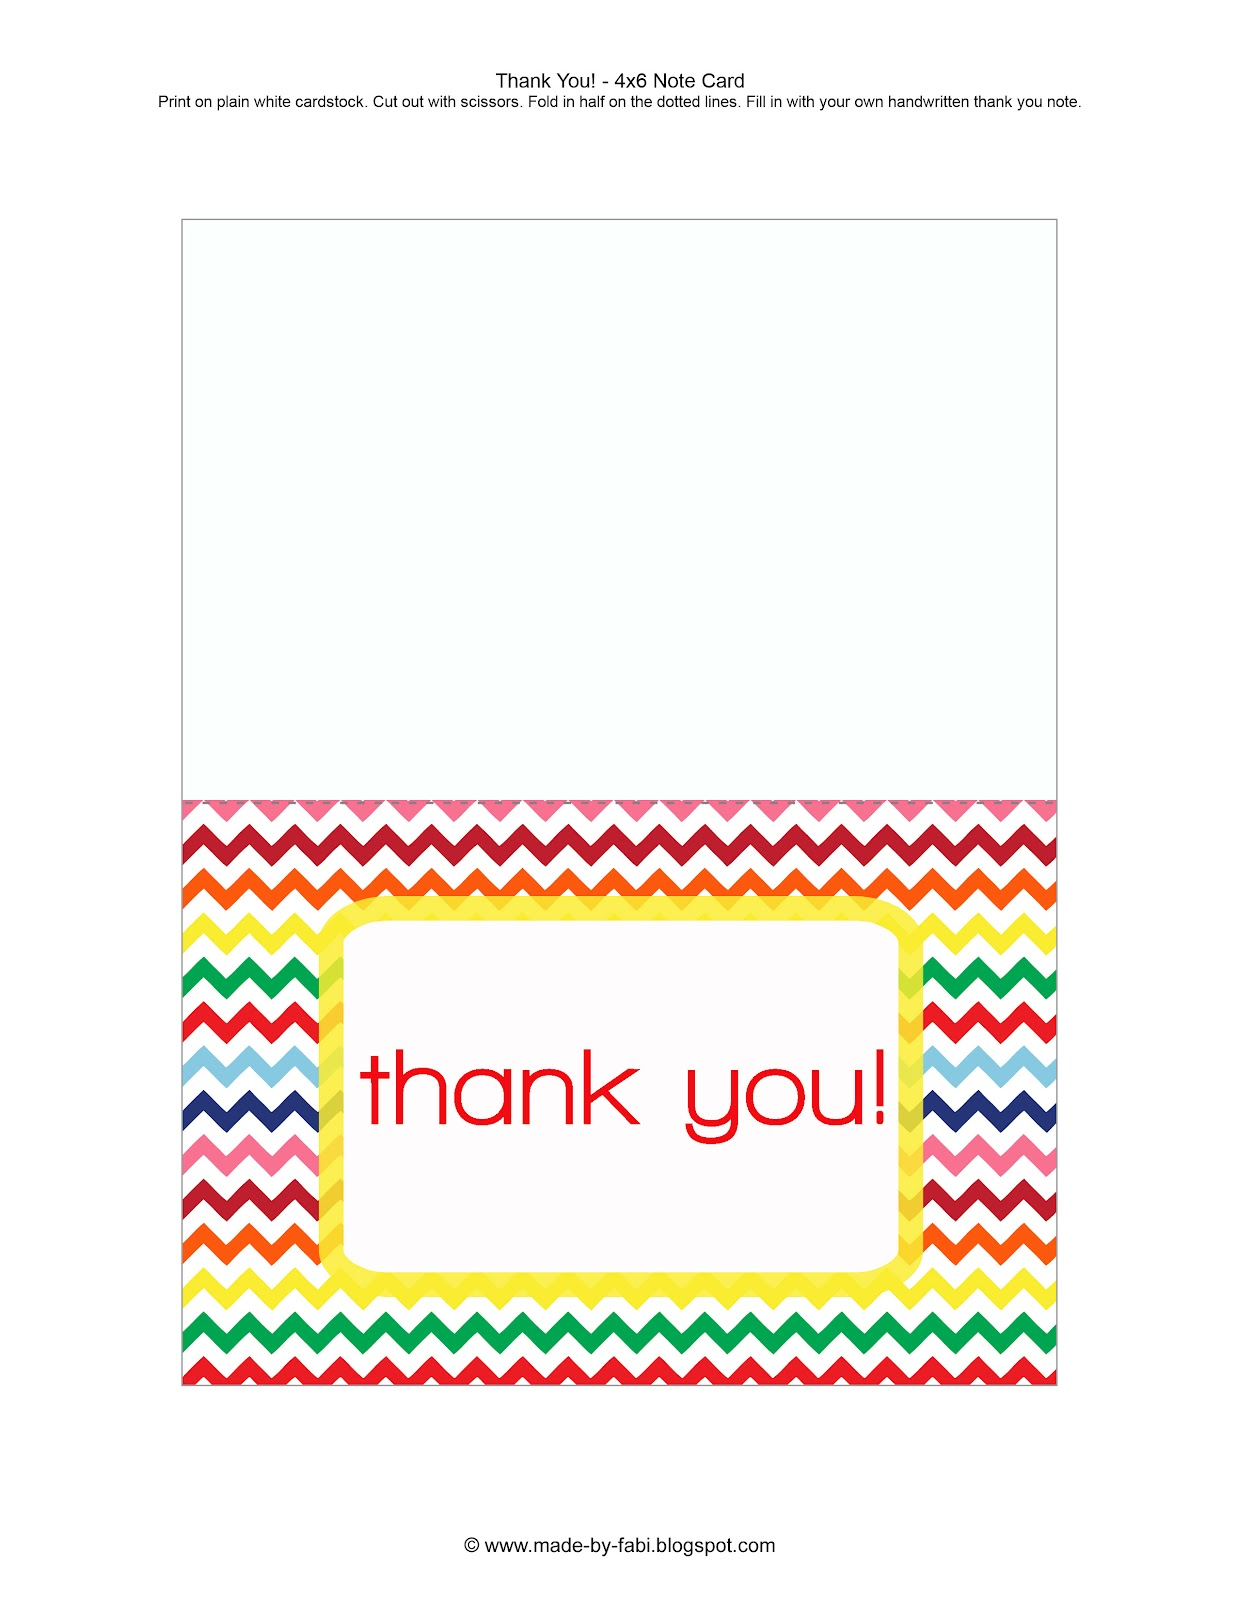 Sweet image intended for printable thank you card